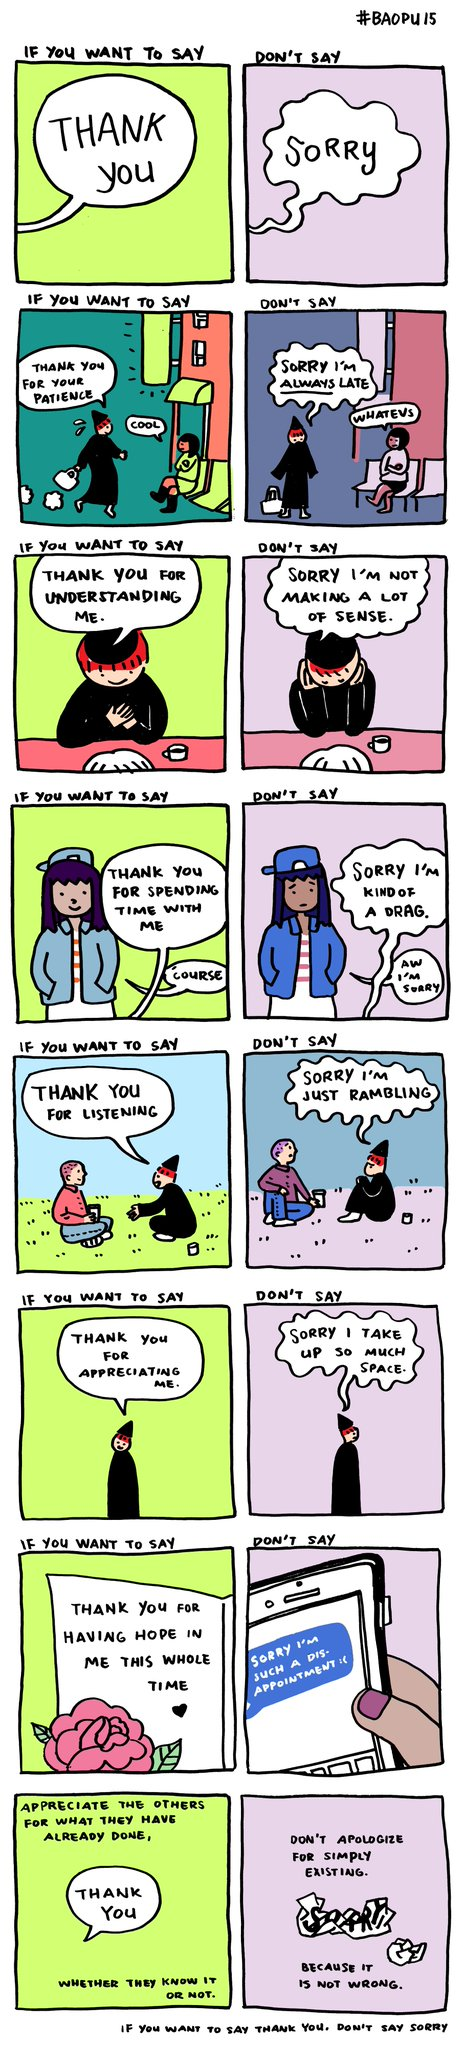 It's about saying thank you to people who support you, instead of sorry that you're a burden to them.  For my VI readers, ping me and I'd love to read the cartoon panels aloud to you.  Don't be sorry you called me, I'll be thankful you did.  See how that works?